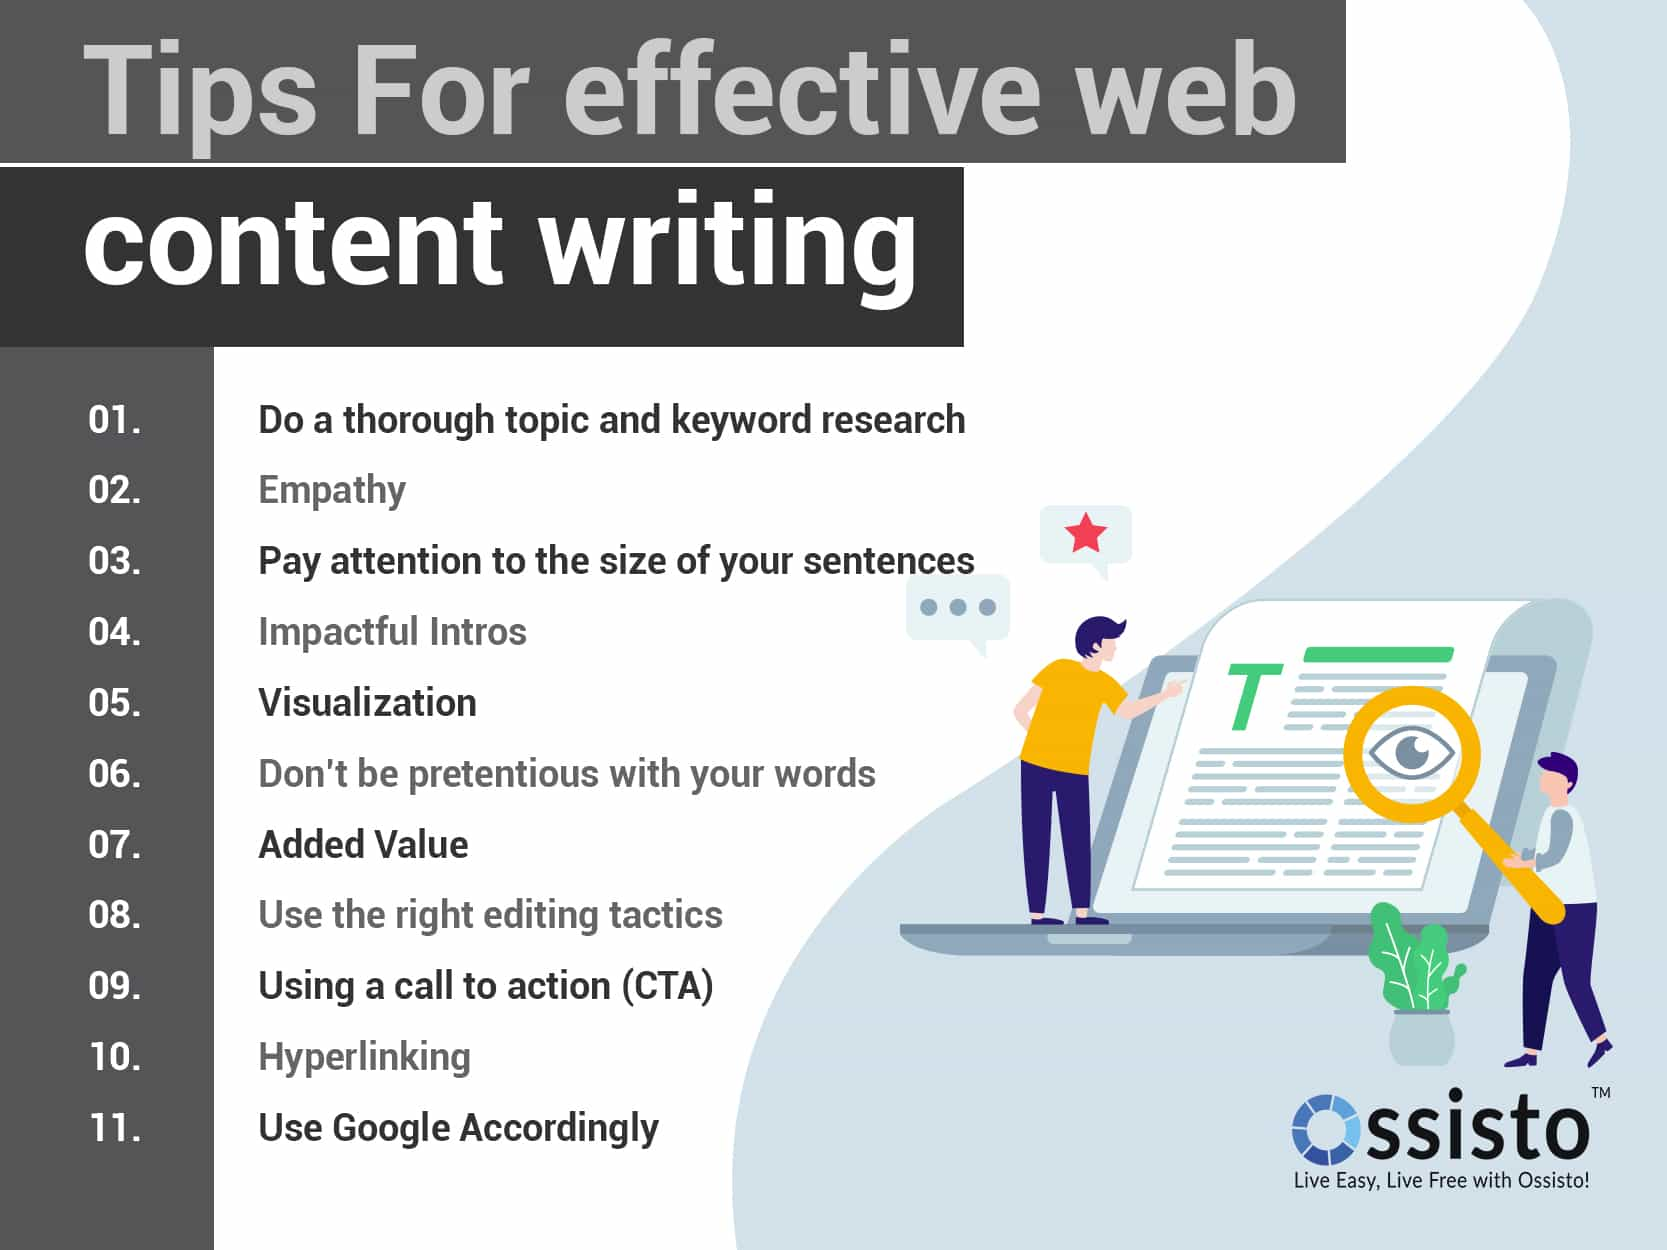 Tips-for-effective-website-content-writing-service